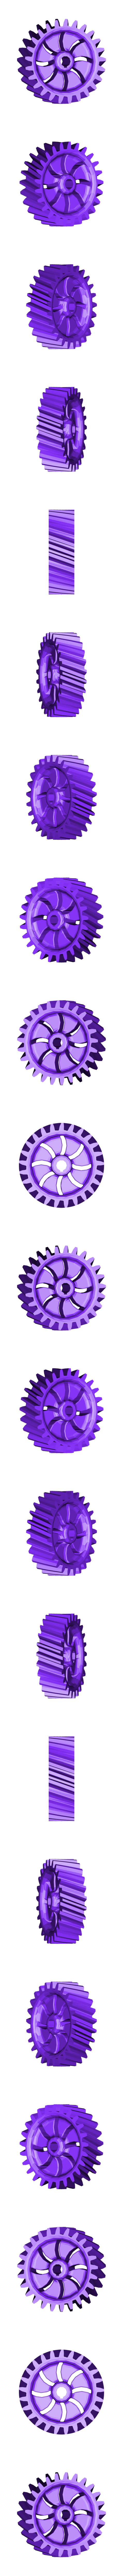 prt0001.stl Download free STL file Helical Gear 2 • 3D printing design, O3D